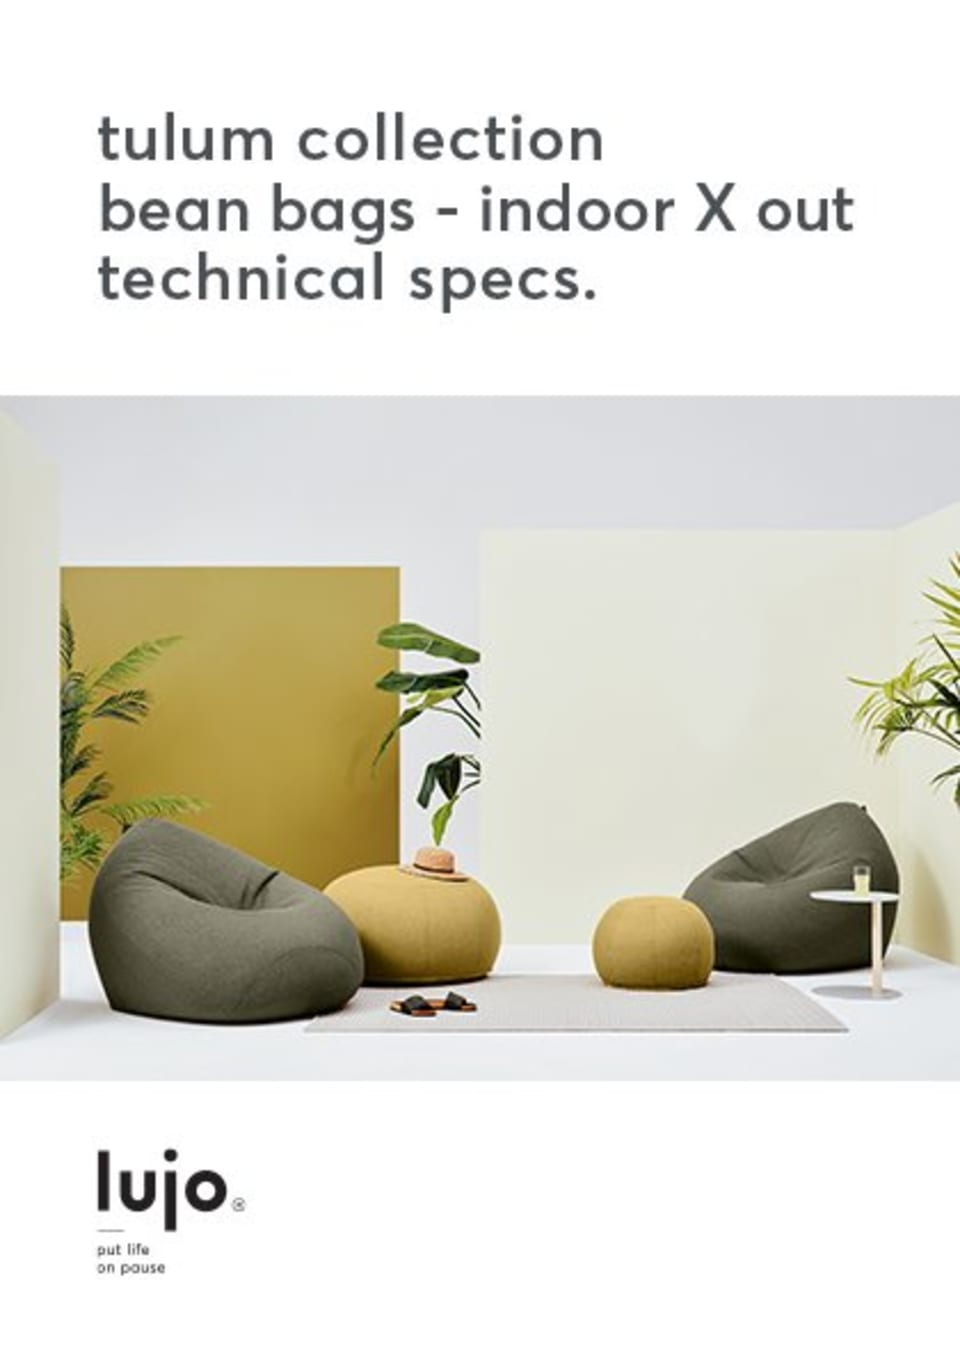 https://cdn.accentuate.io/4371647922274/11726231994466/Lujo_Technical-Specs_Kyoto-Bean-Bags_Indoor-X-Out-v1583358214791.pdf